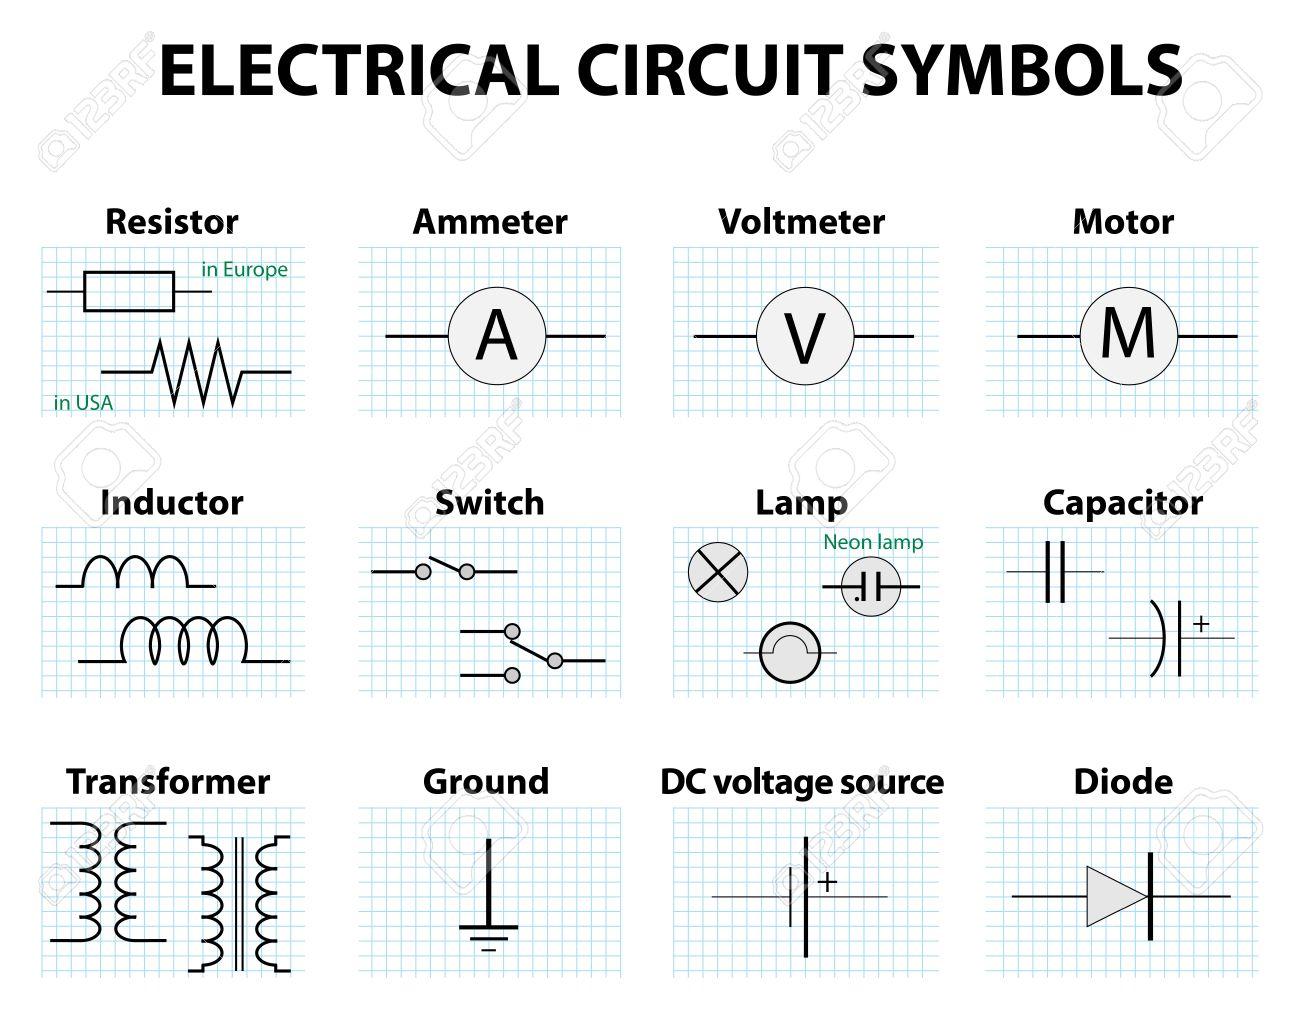 Electronic symbol electric circuit symbol element set pictogram electronic symbol electric circuit symbol element set pictogram used to represent electrical and electronic biocorpaavc Gallery